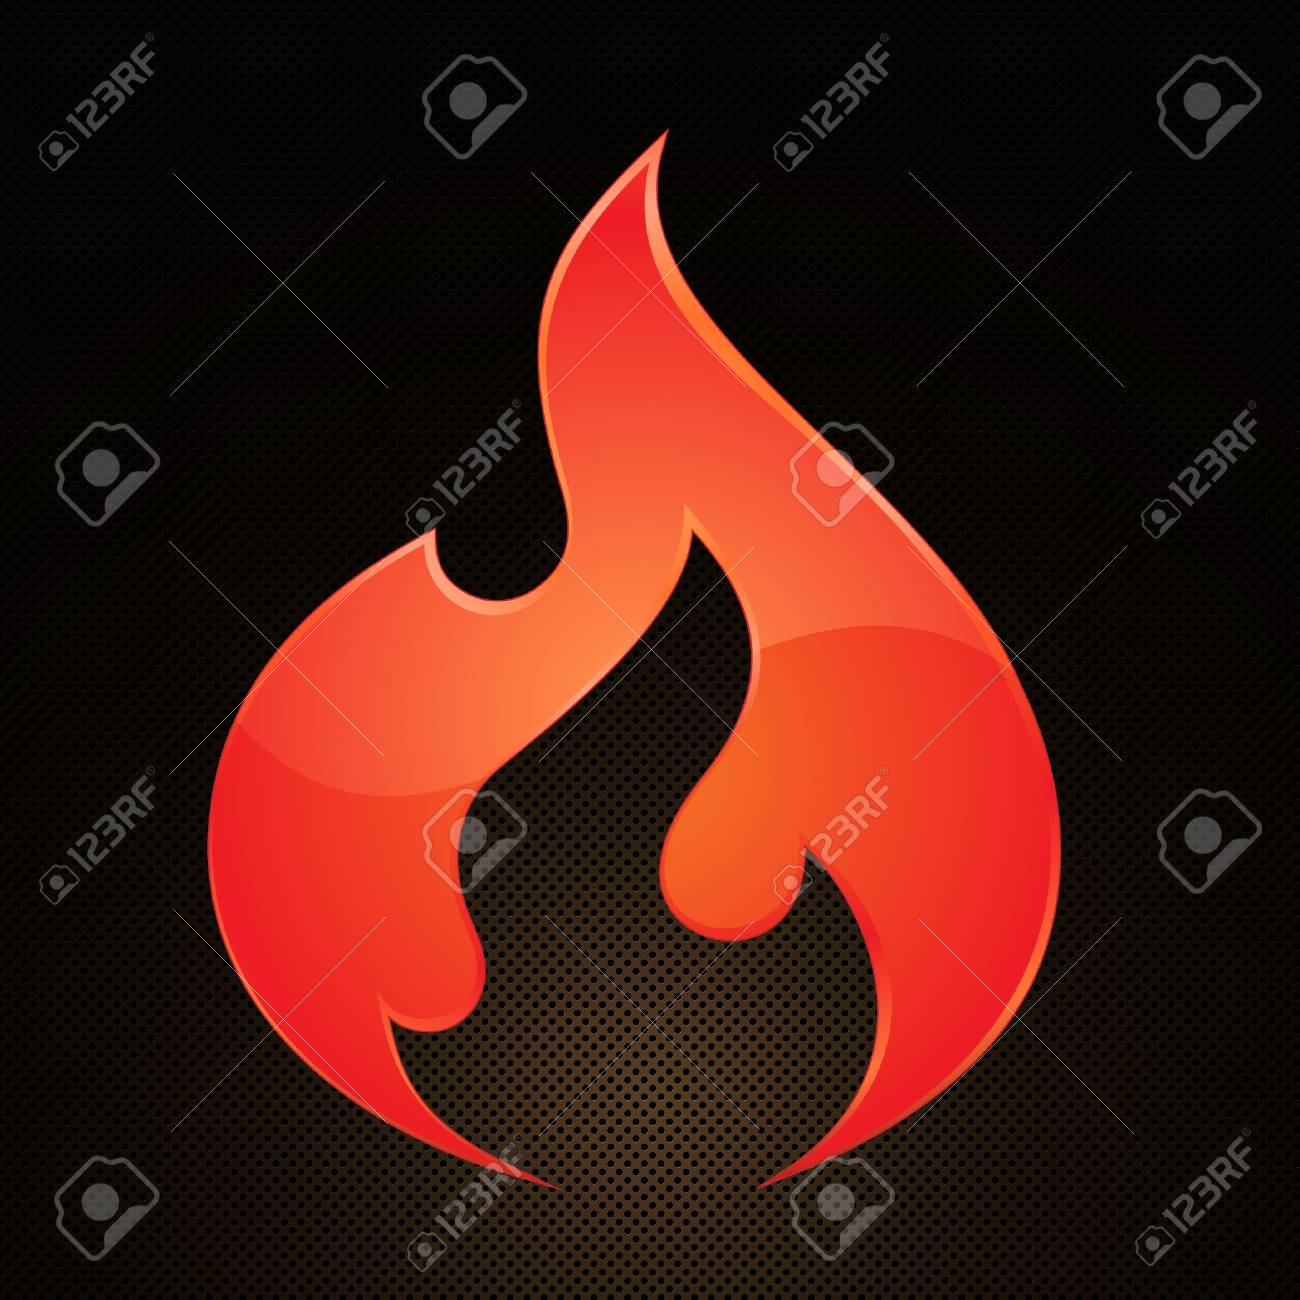 Illustration of fire on abstract grid background Stock Vector - 6815628